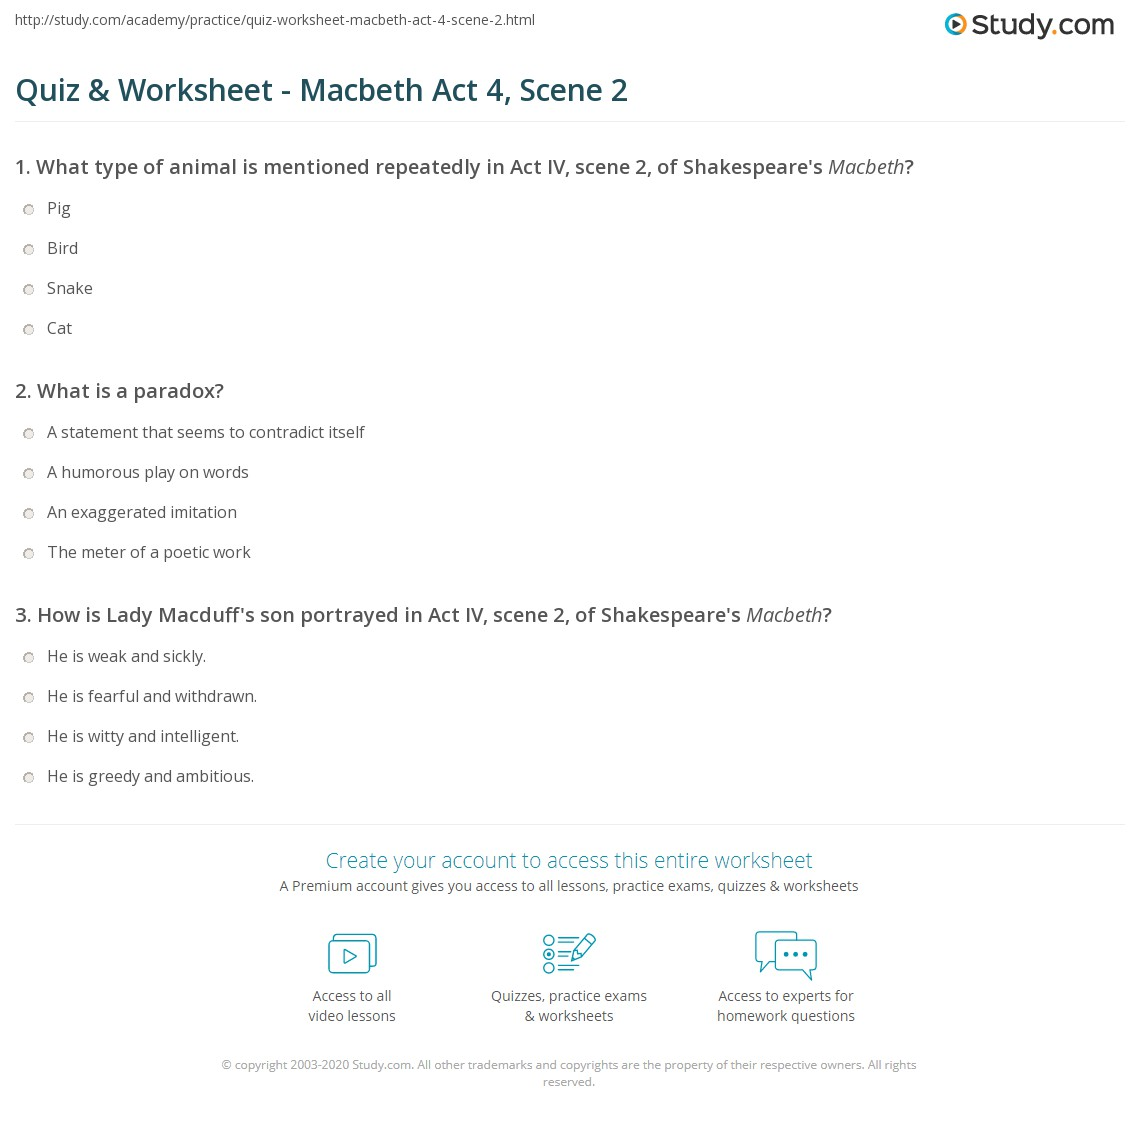 quiz worksheet macbeth act scene study com print macbeth act 4 scene 2 summary quotes worksheet